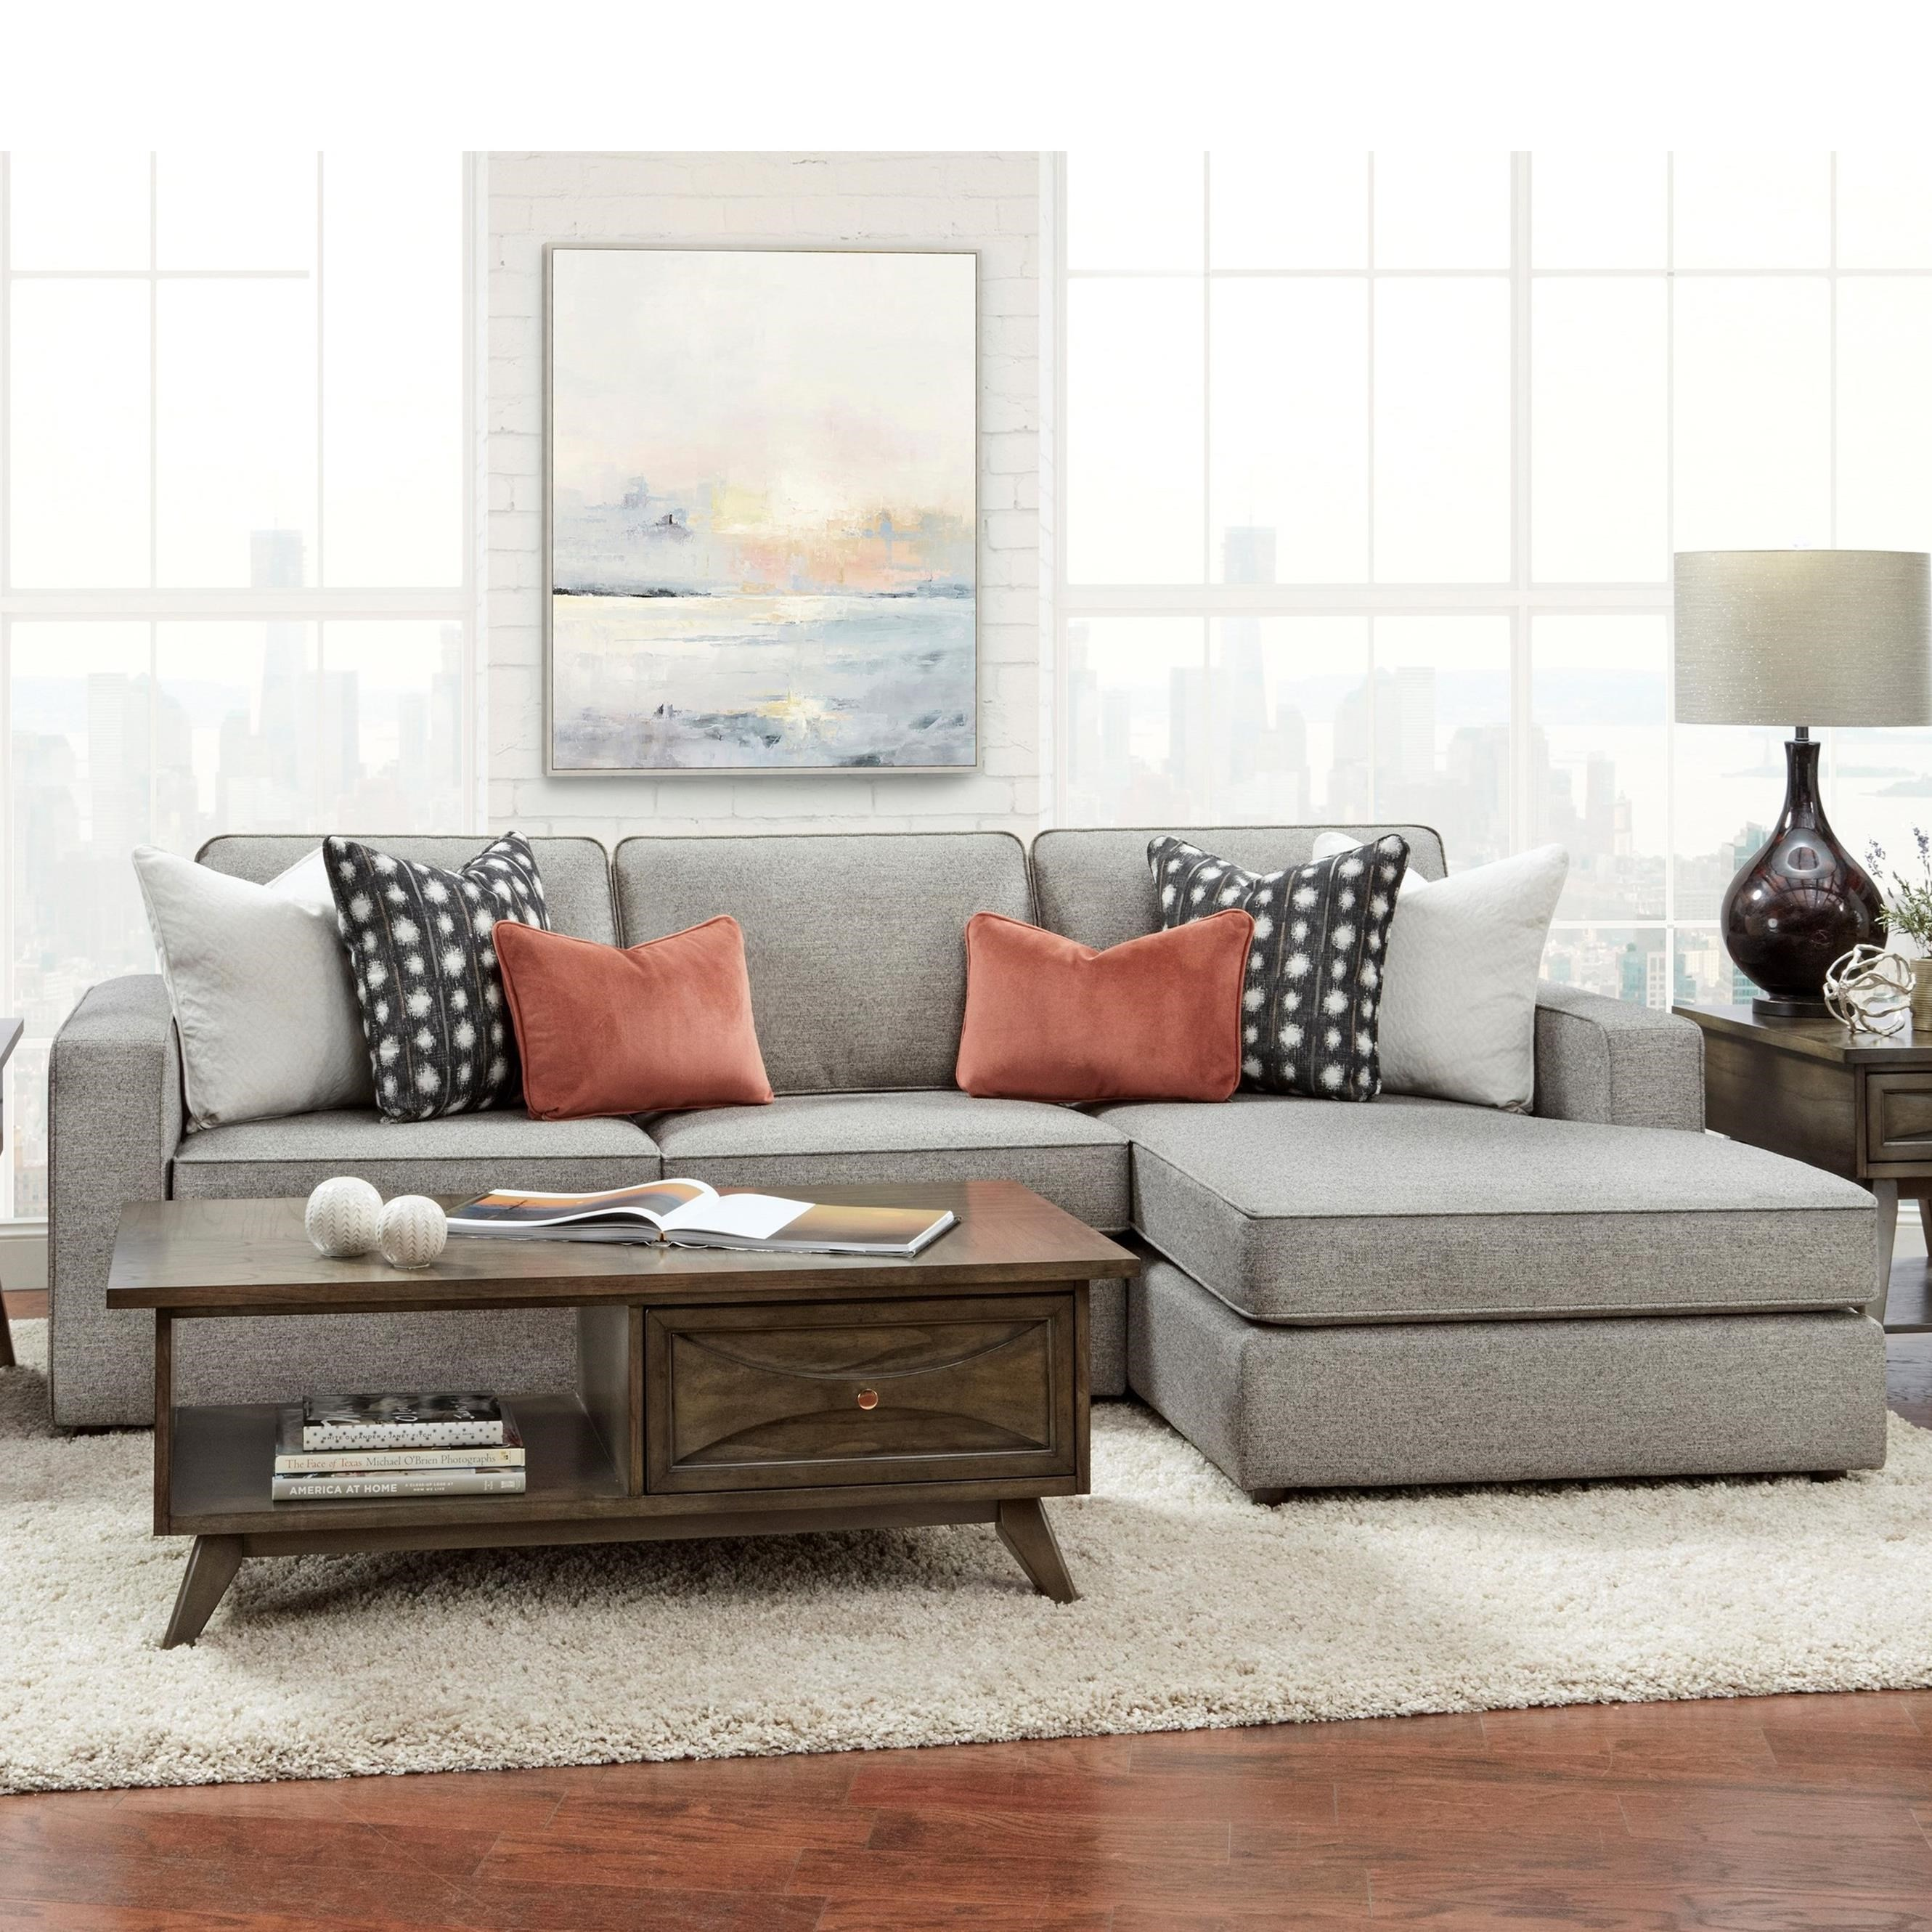 2061 2-Piece Sofa Chaise by Fusion Furniture at Furniture Superstore - Rochester, MN